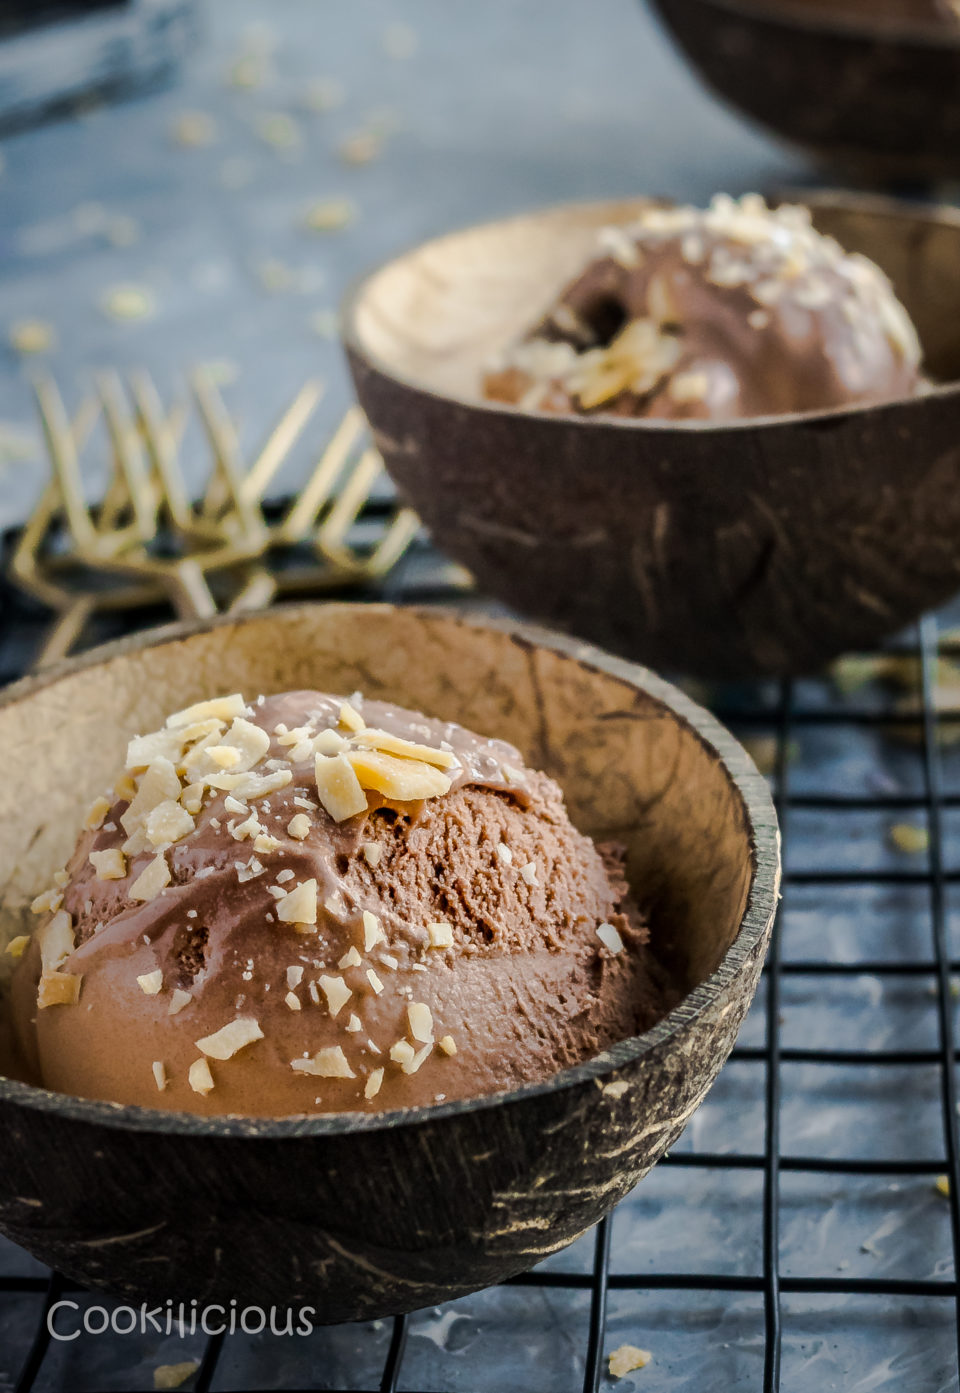 Coconut Chocolate Dairy-Free Ice Cream in two coconut bowls